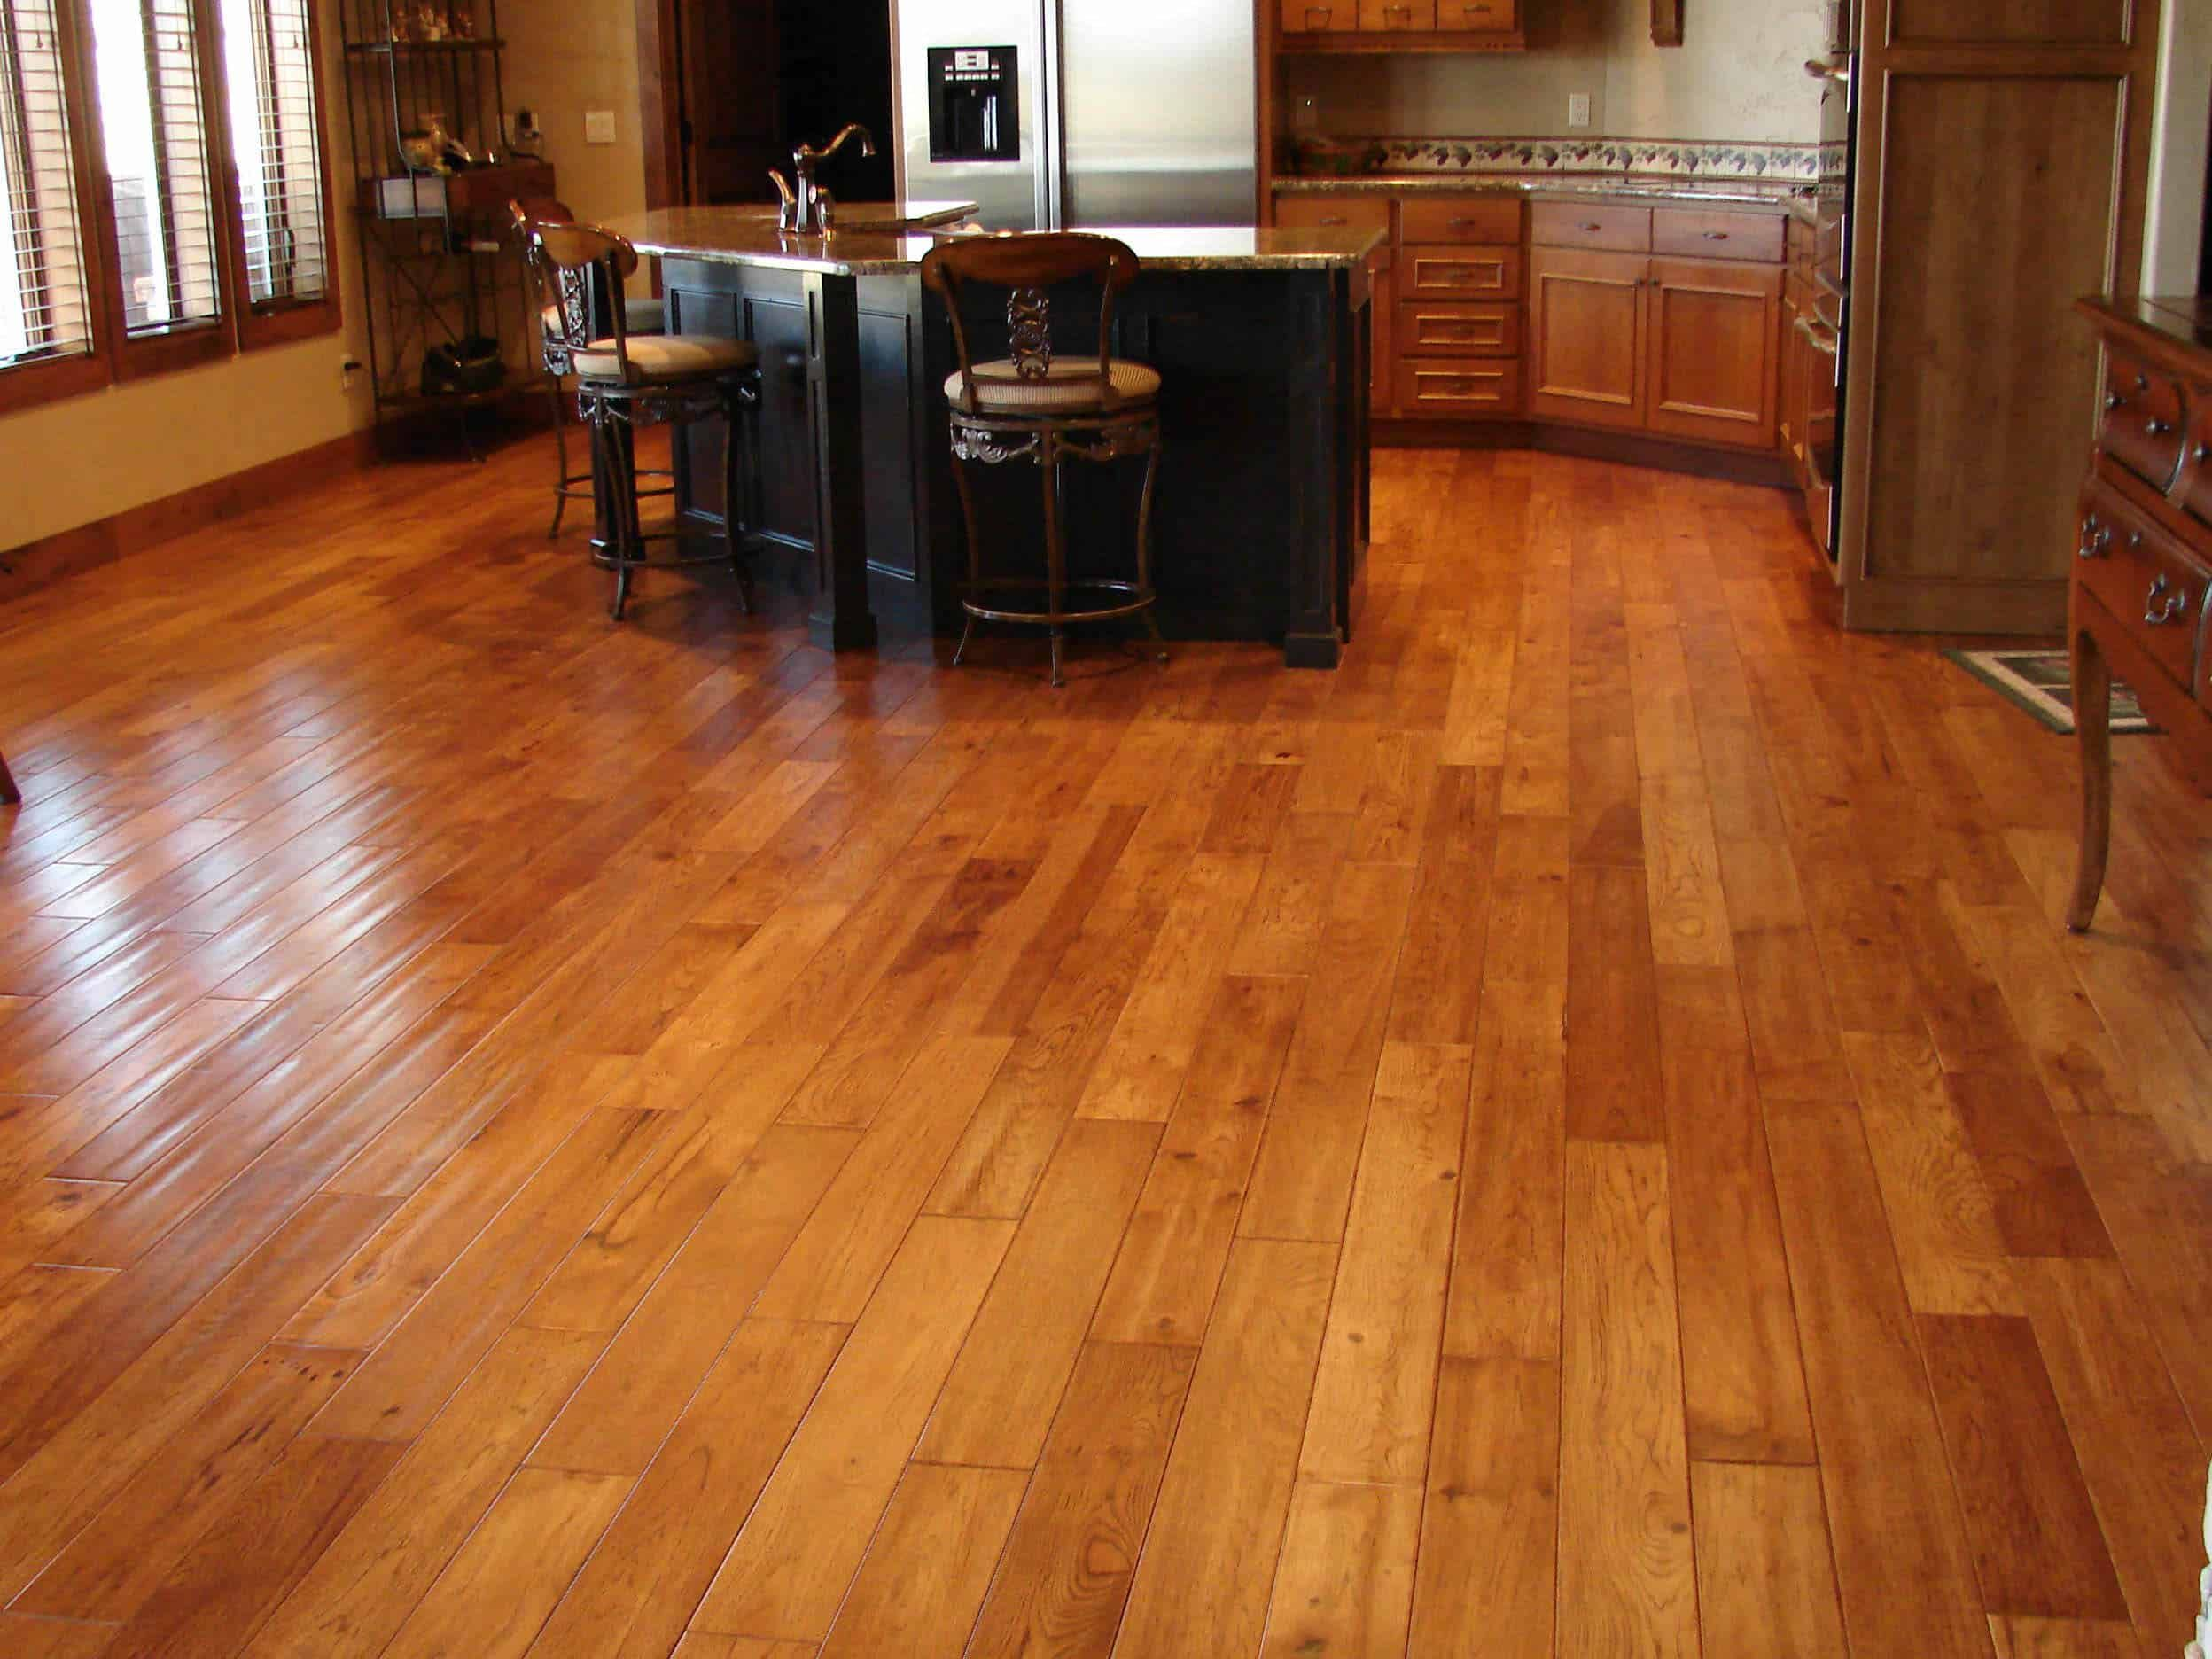 How Much Does it Cost to Install Hardwood Floors